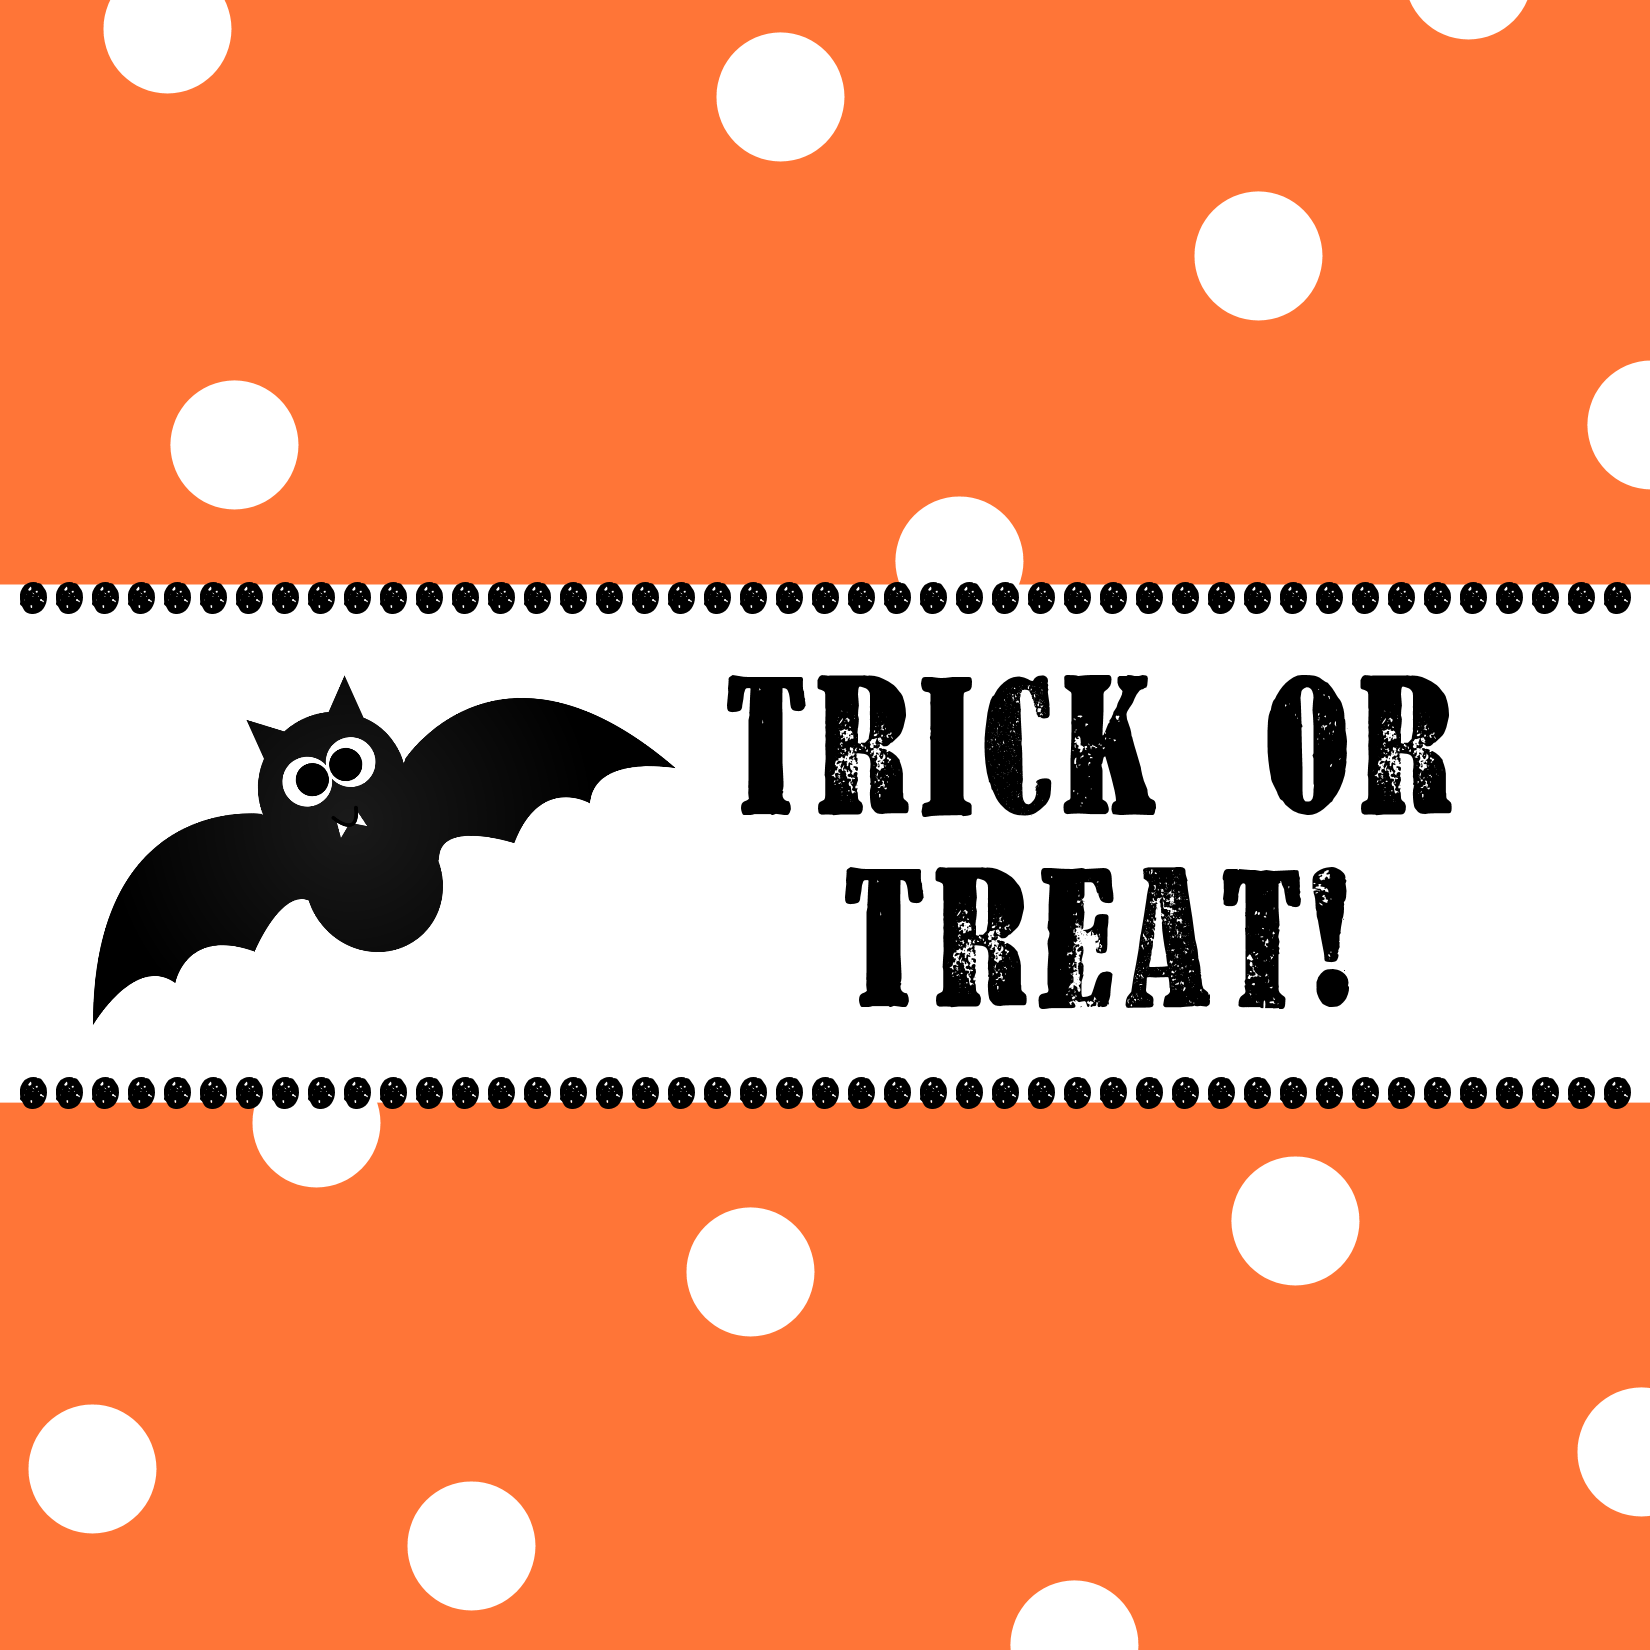 halloween candy bar wrappers templates free - Boat.jeremyeaton.co